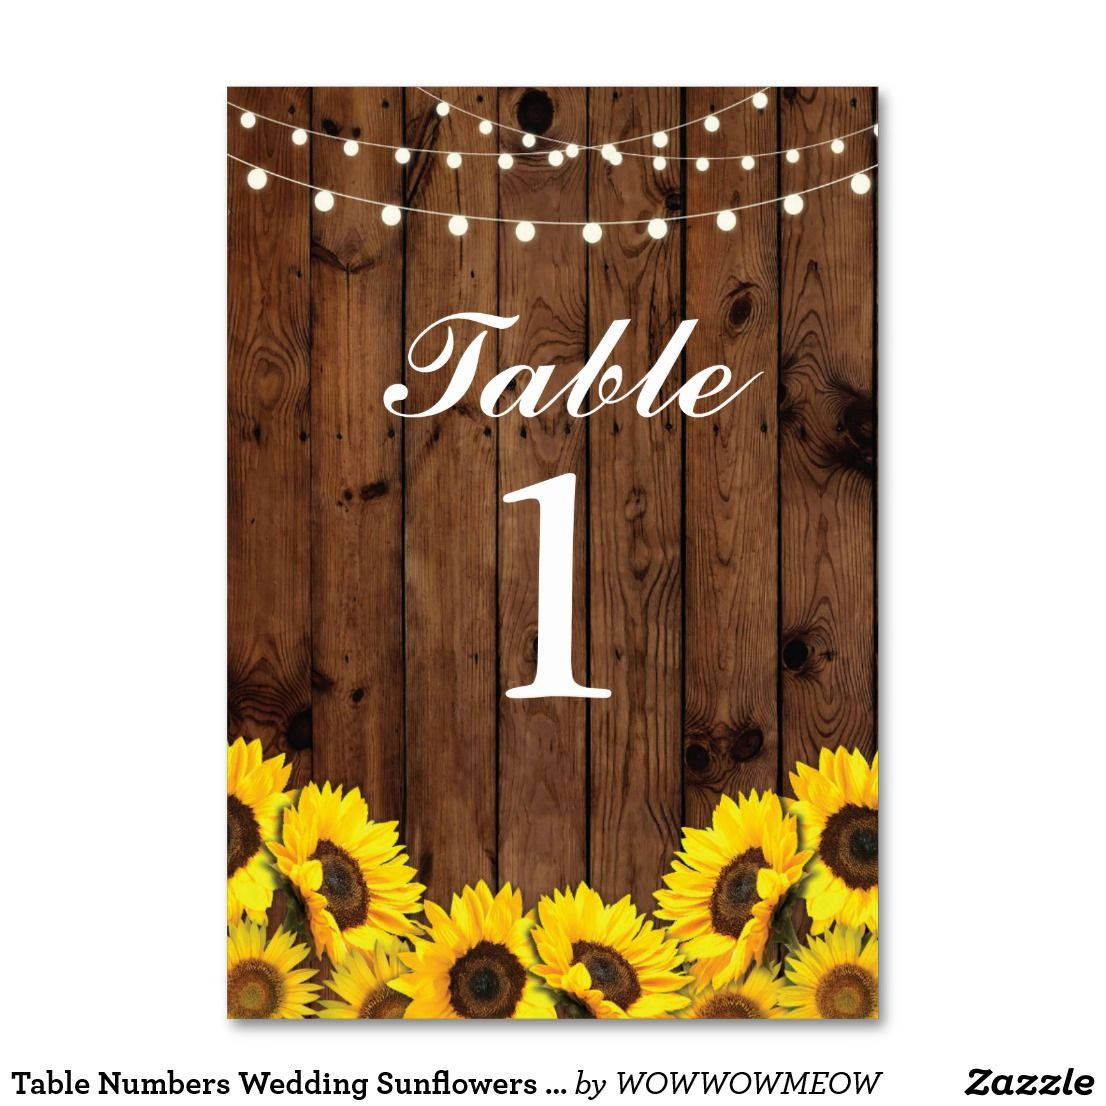 Table Numbers Wedding Sunflowers Wood Floral Cards ...